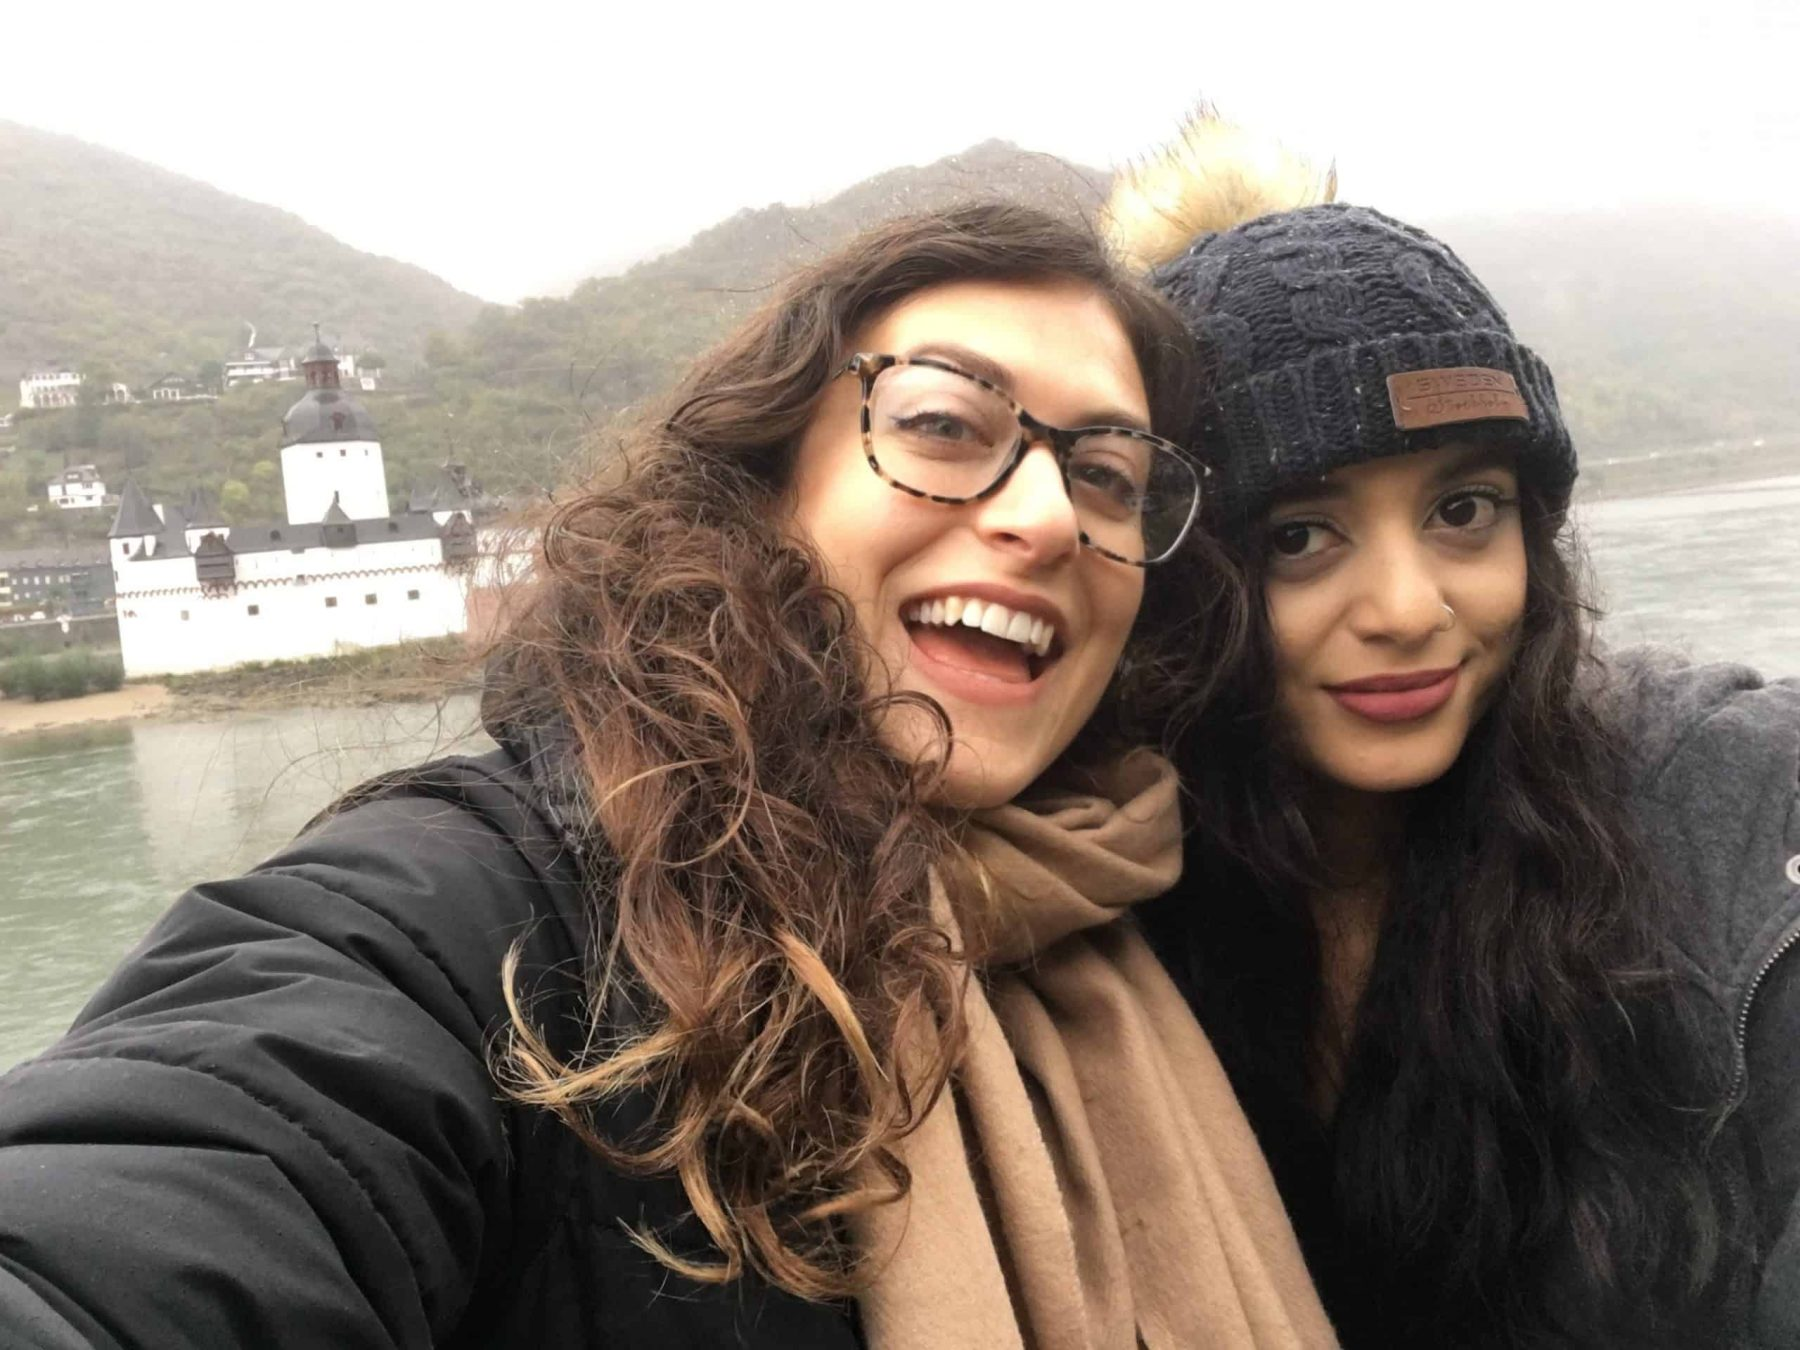 2 girls in front of a castle in Germany on the Rhine River